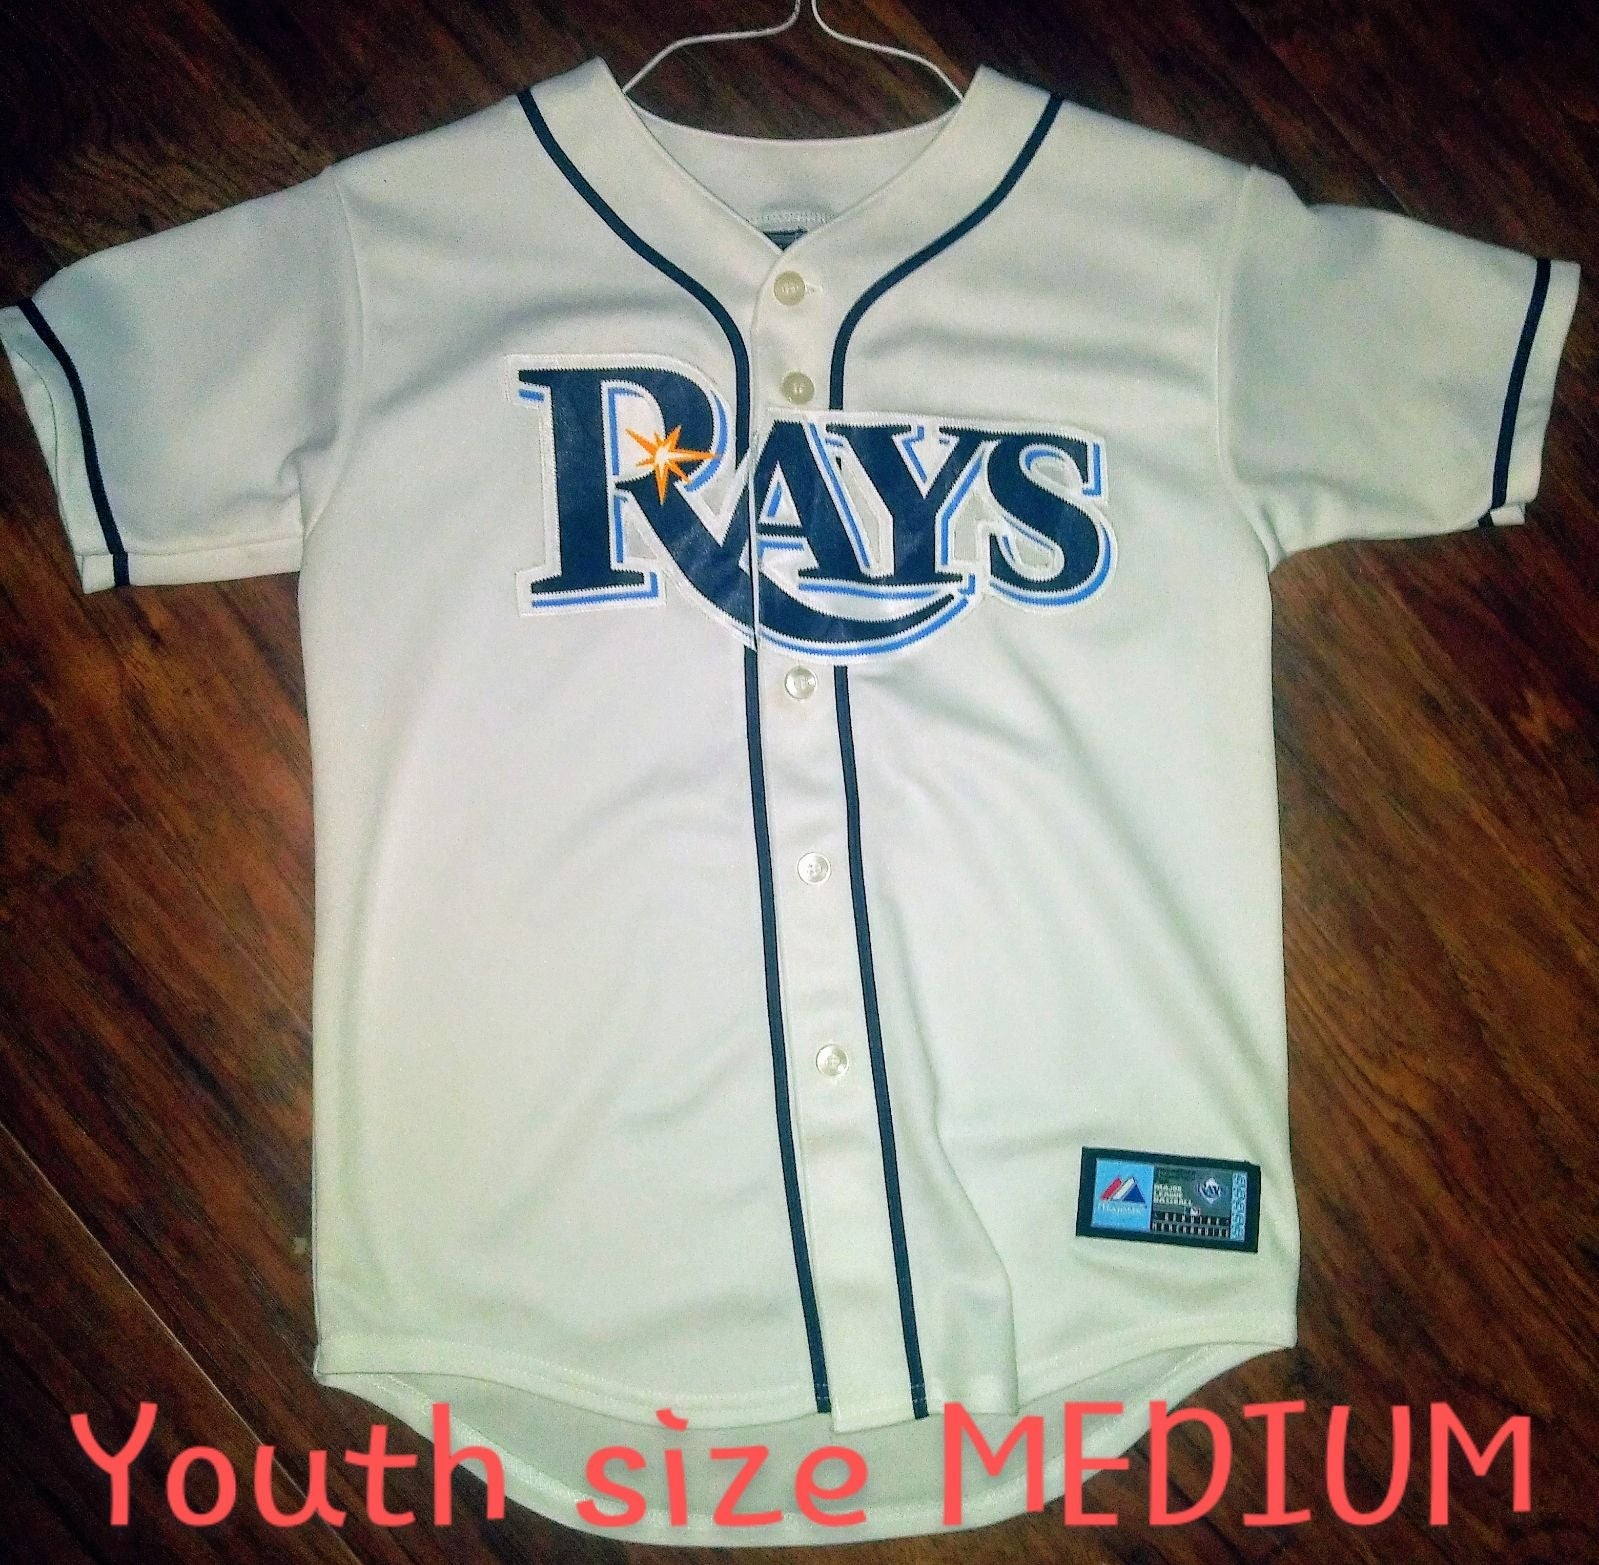 Tampa Bay Rays youth JERSEY (m)